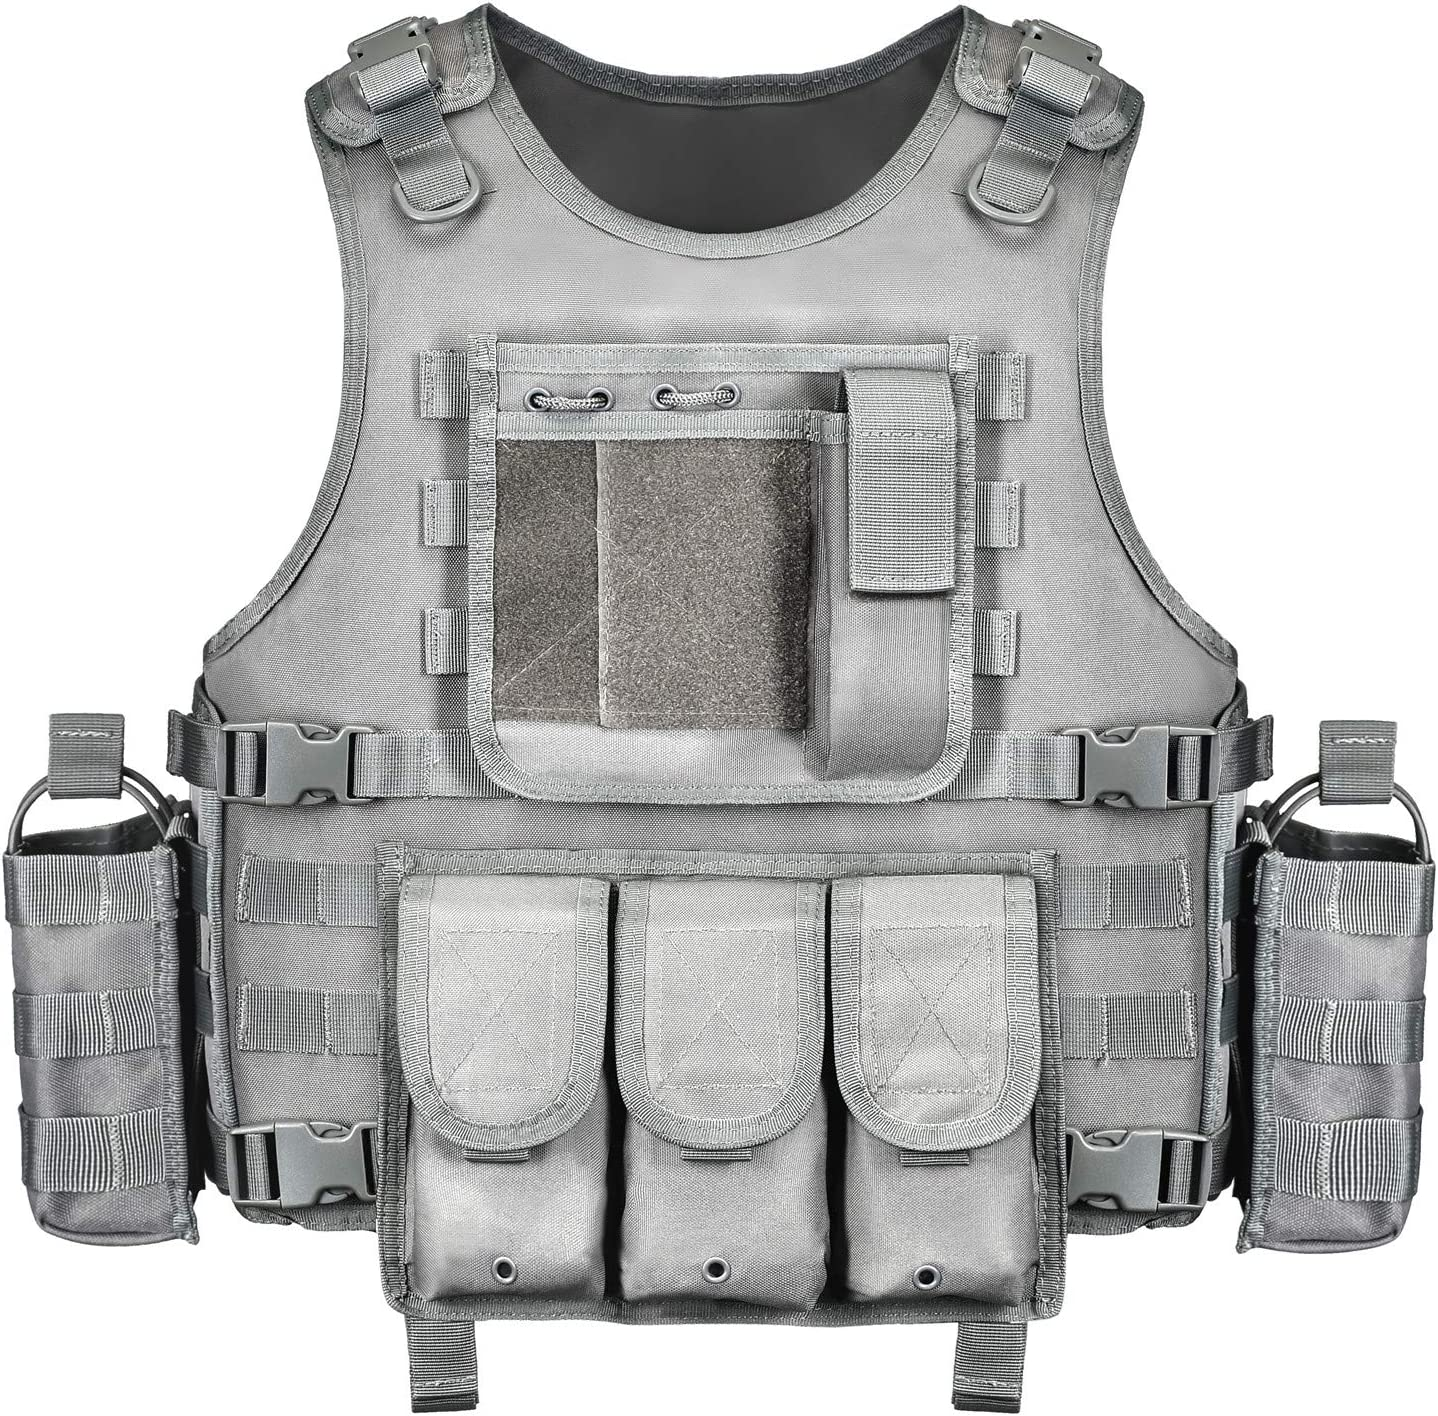 GZ XINXING Black Tactical Airsoft Paintball Vest, Grey color, padded shoulder with buckle locks